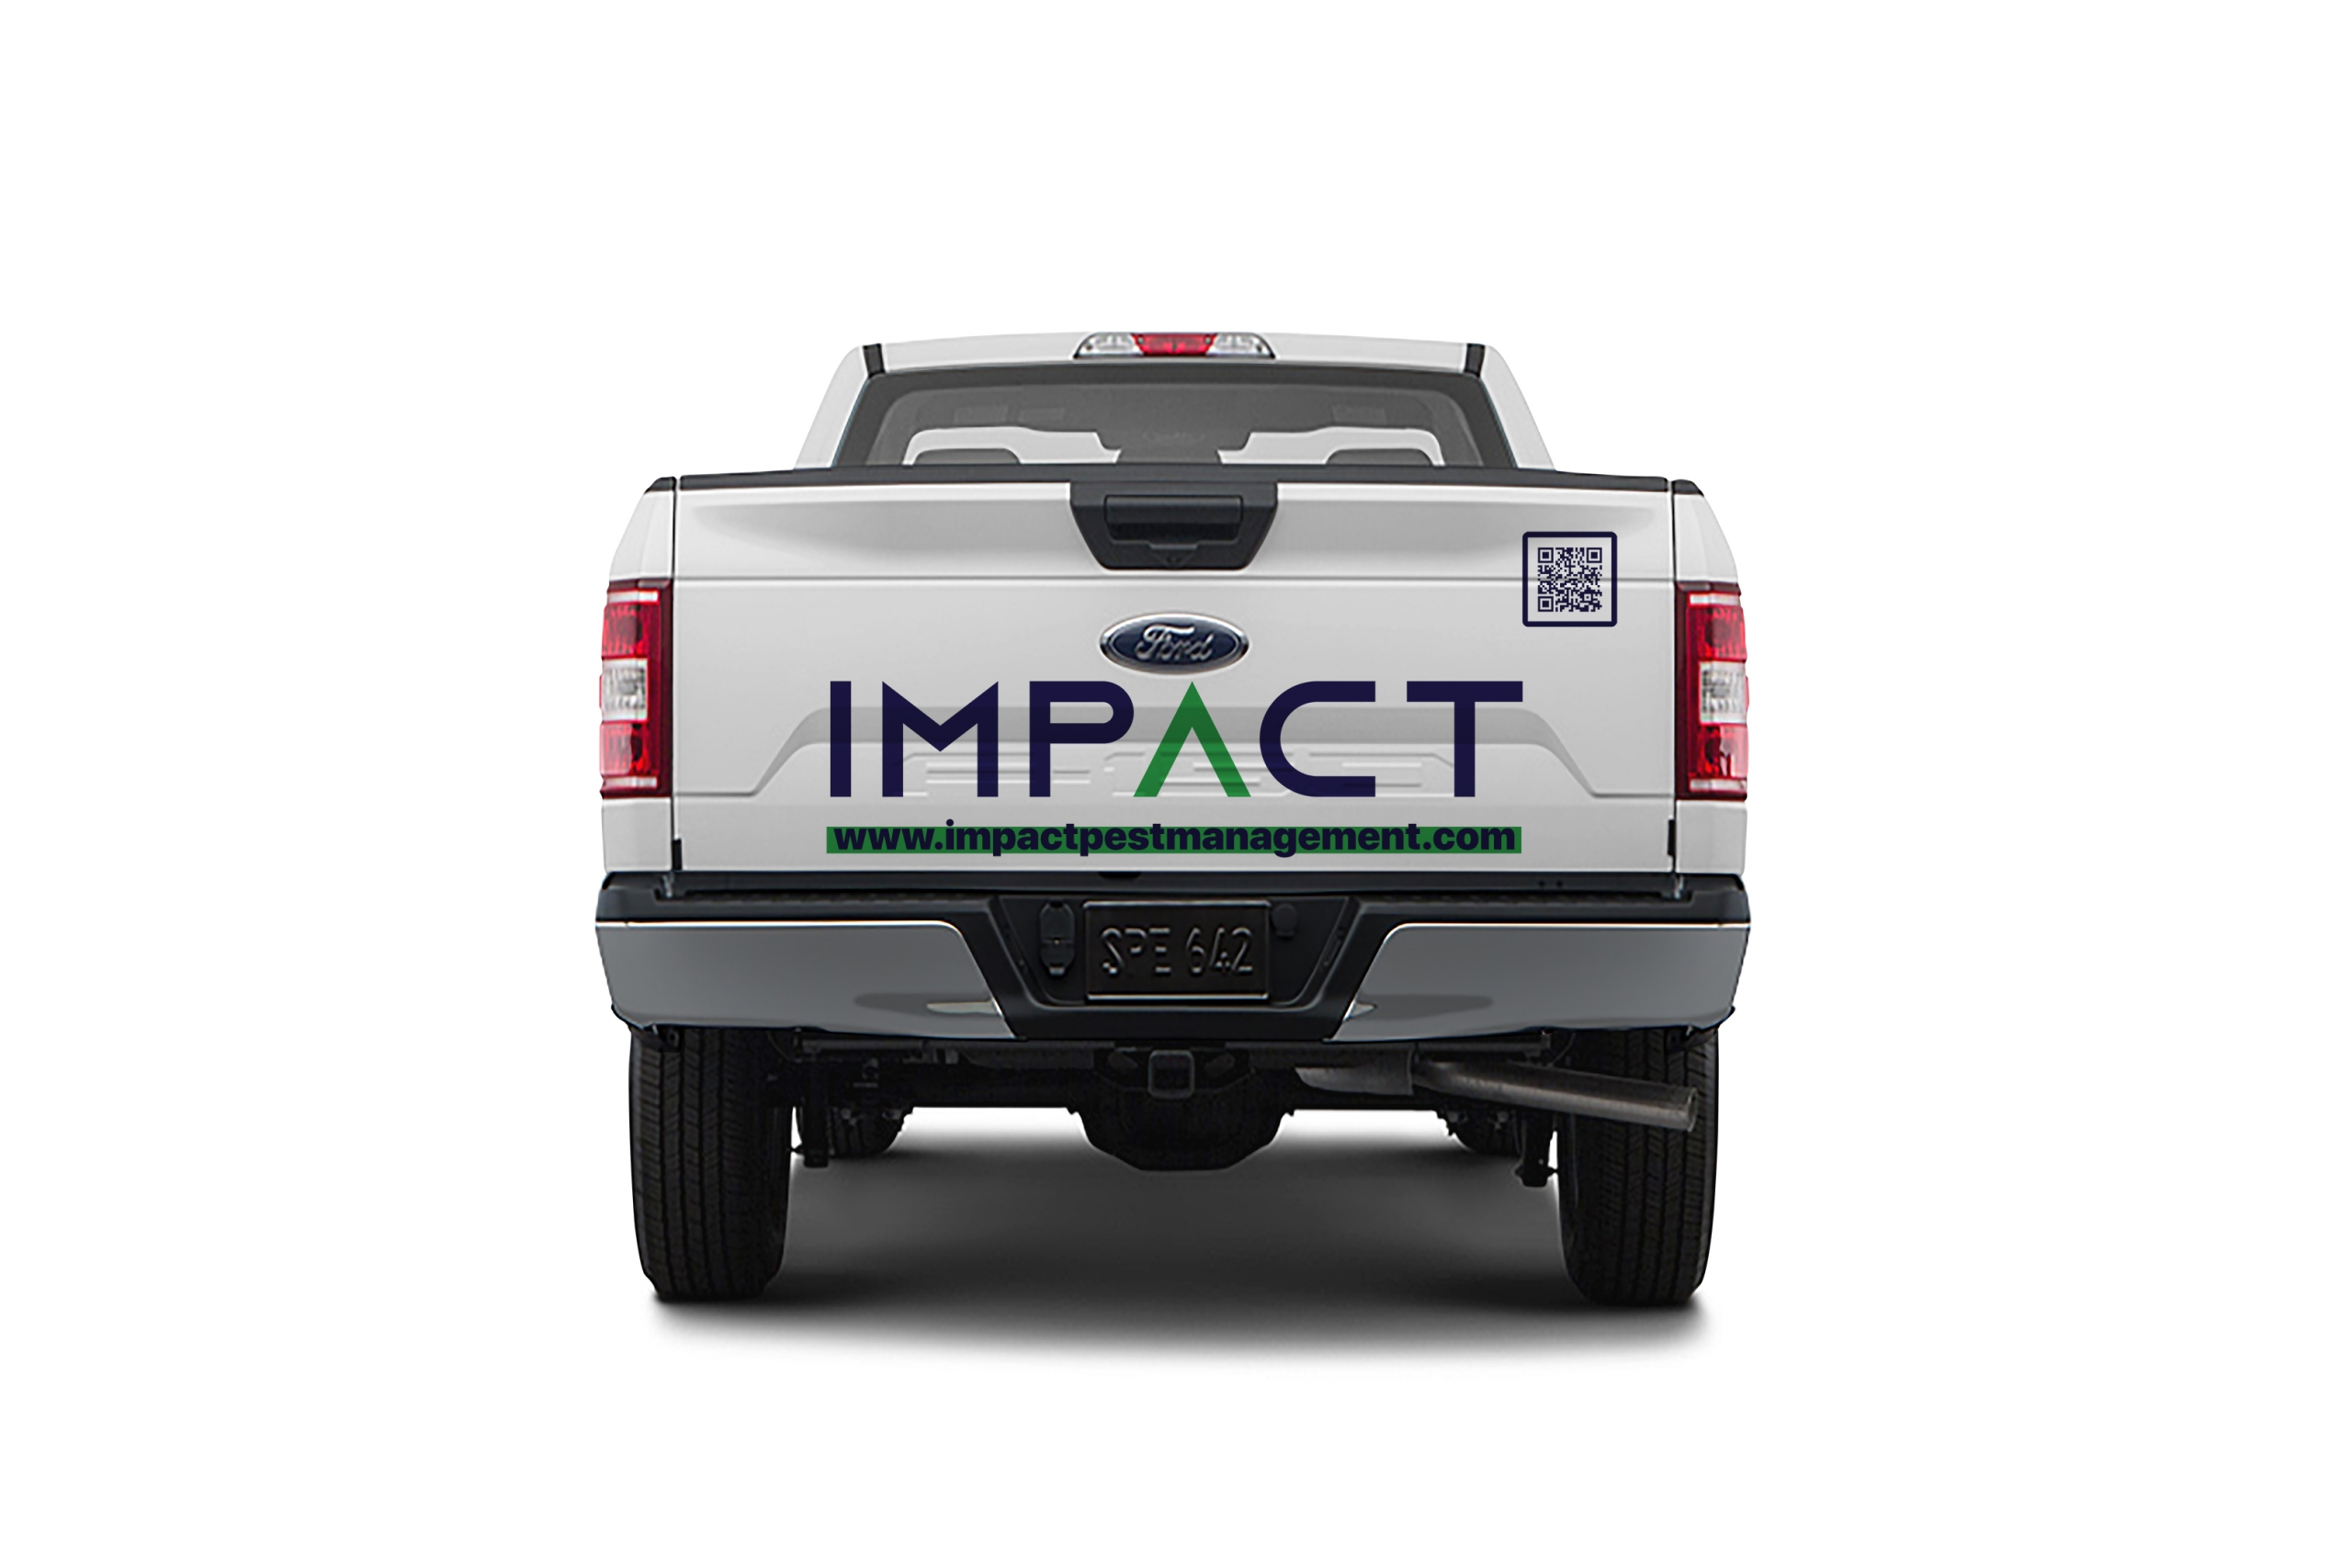 Impact Pest Management Ford F-150 Back